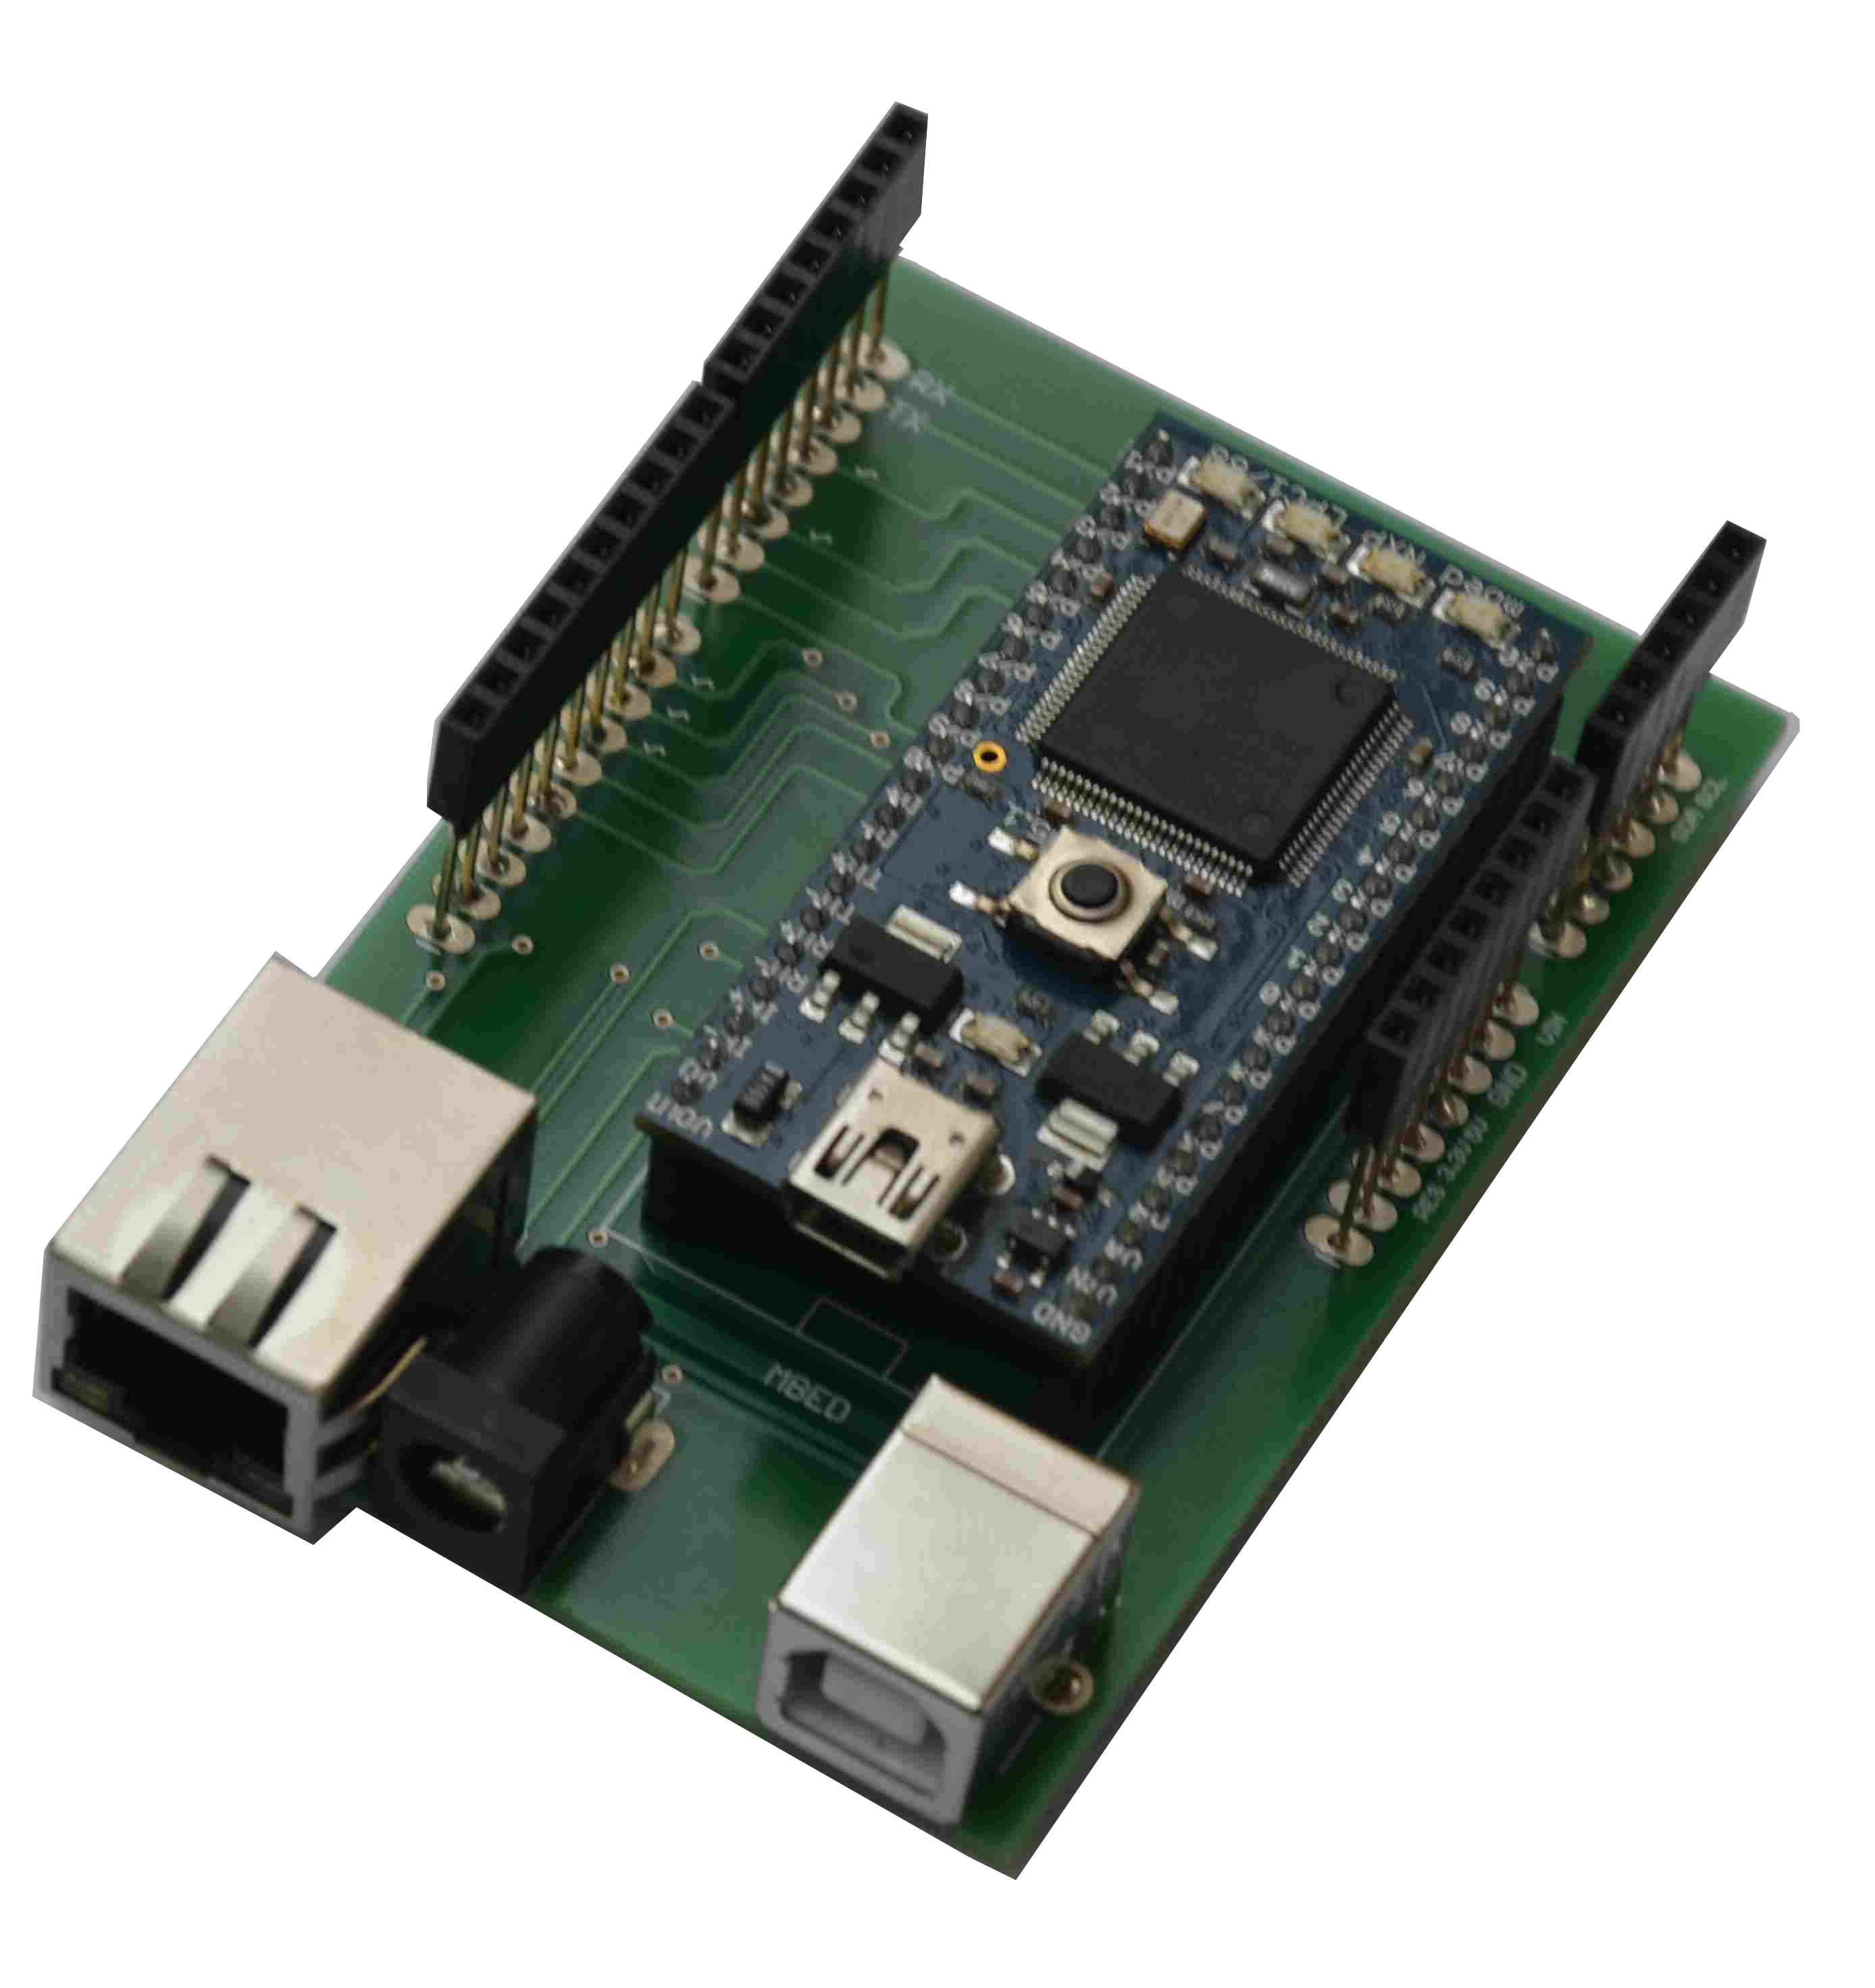 MBED_ADAPTER